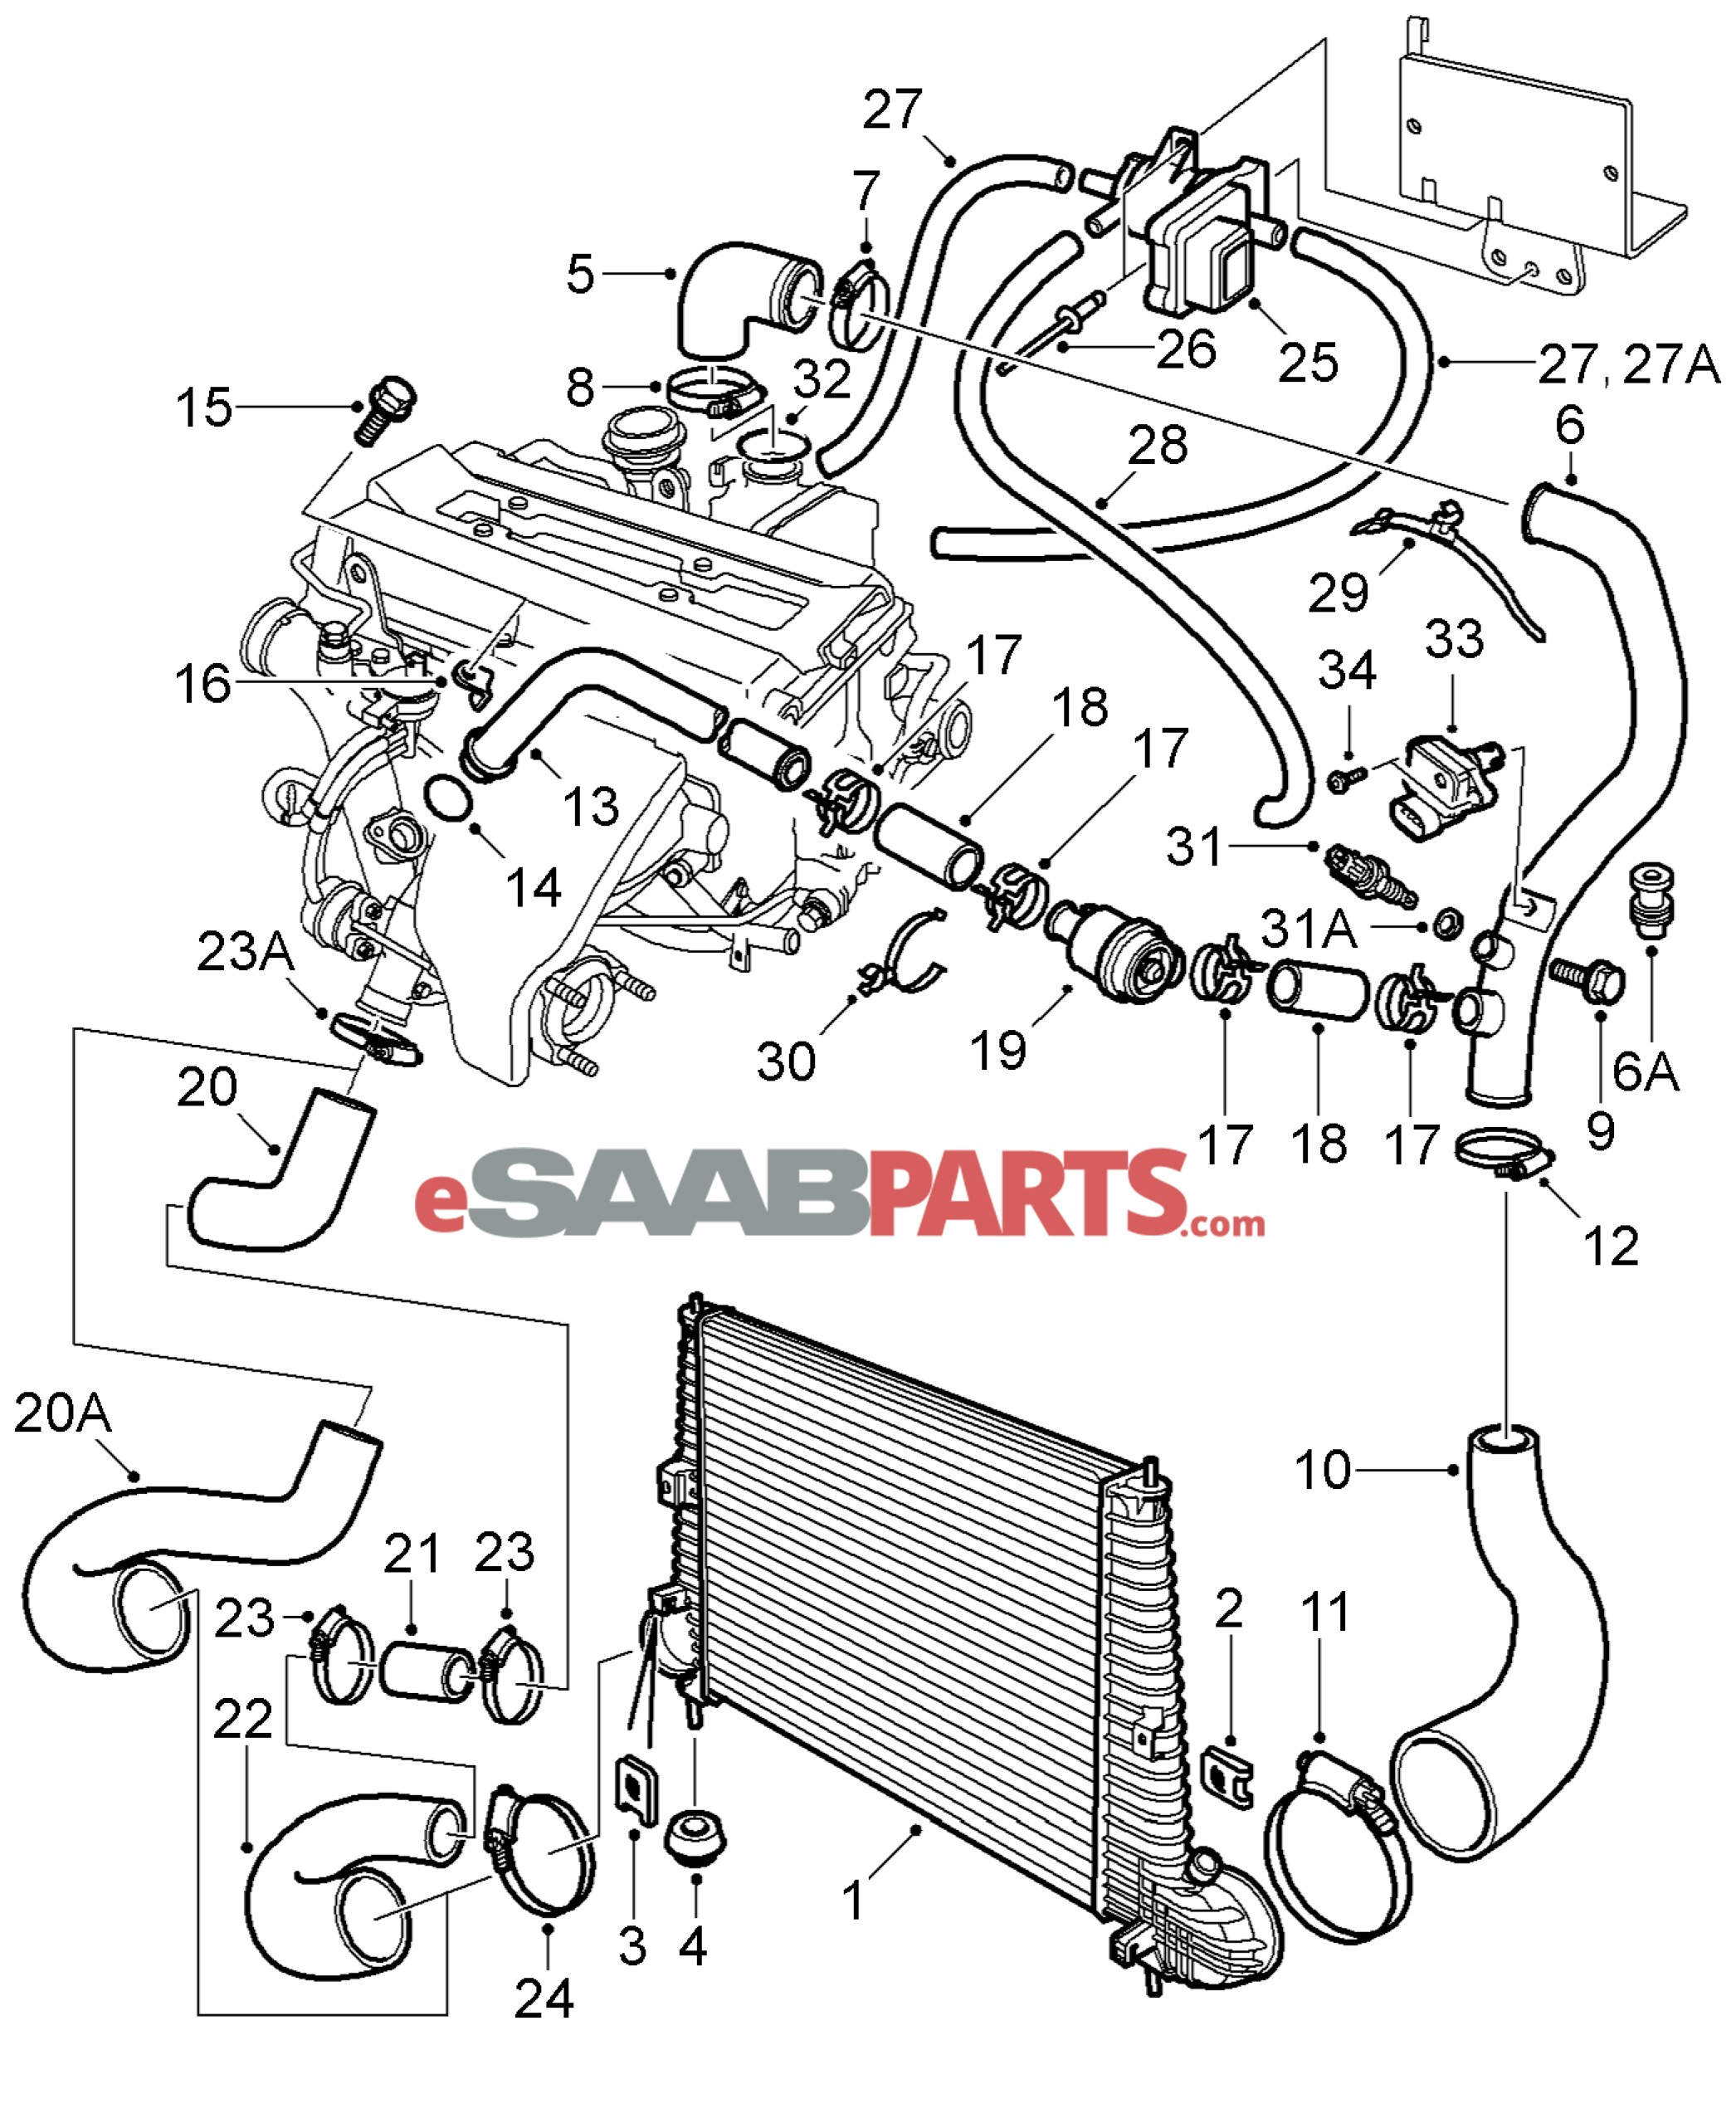 alarm wiring diagram for 2003 chevy trailblazer chevrolet wiring